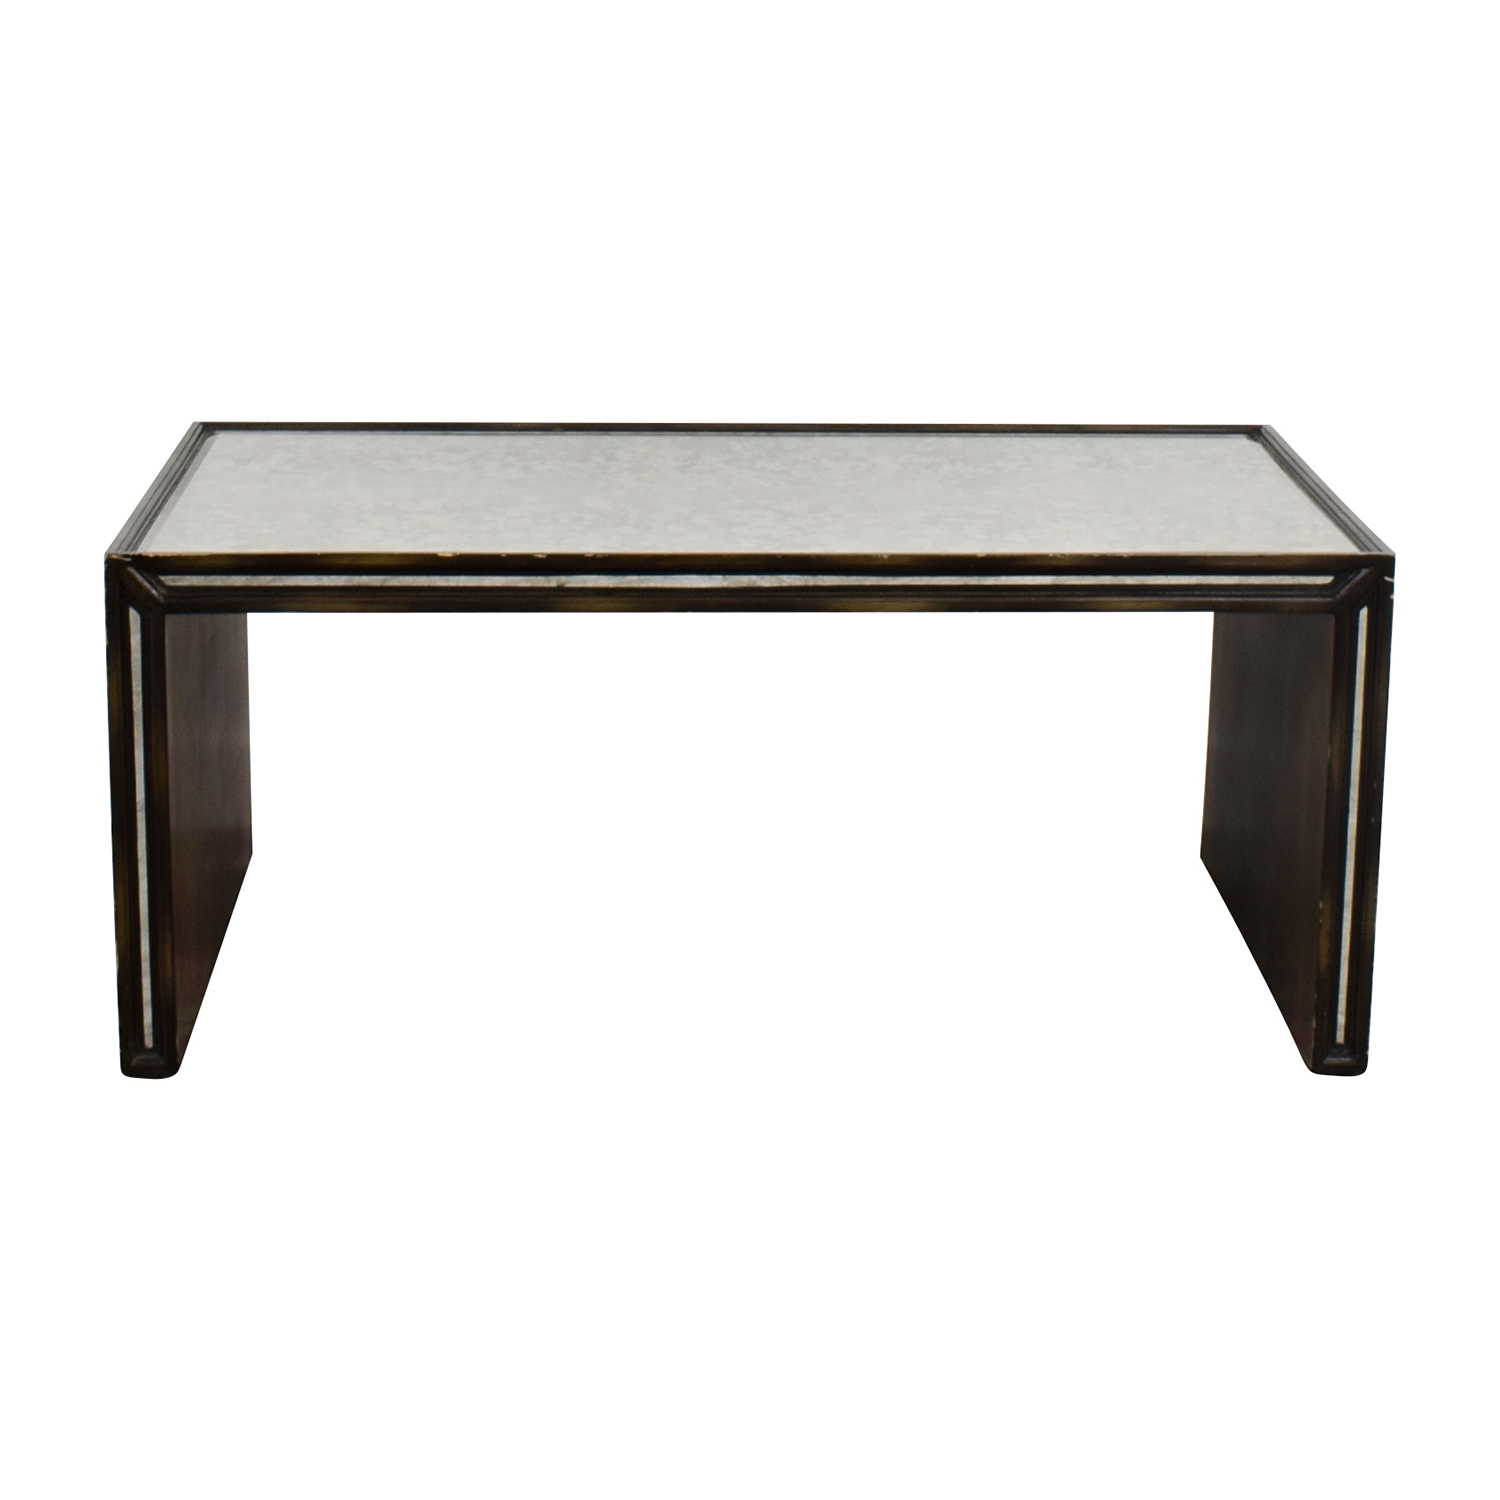 Arhaus coffee table rascalartsnyc for Furniture 90 off